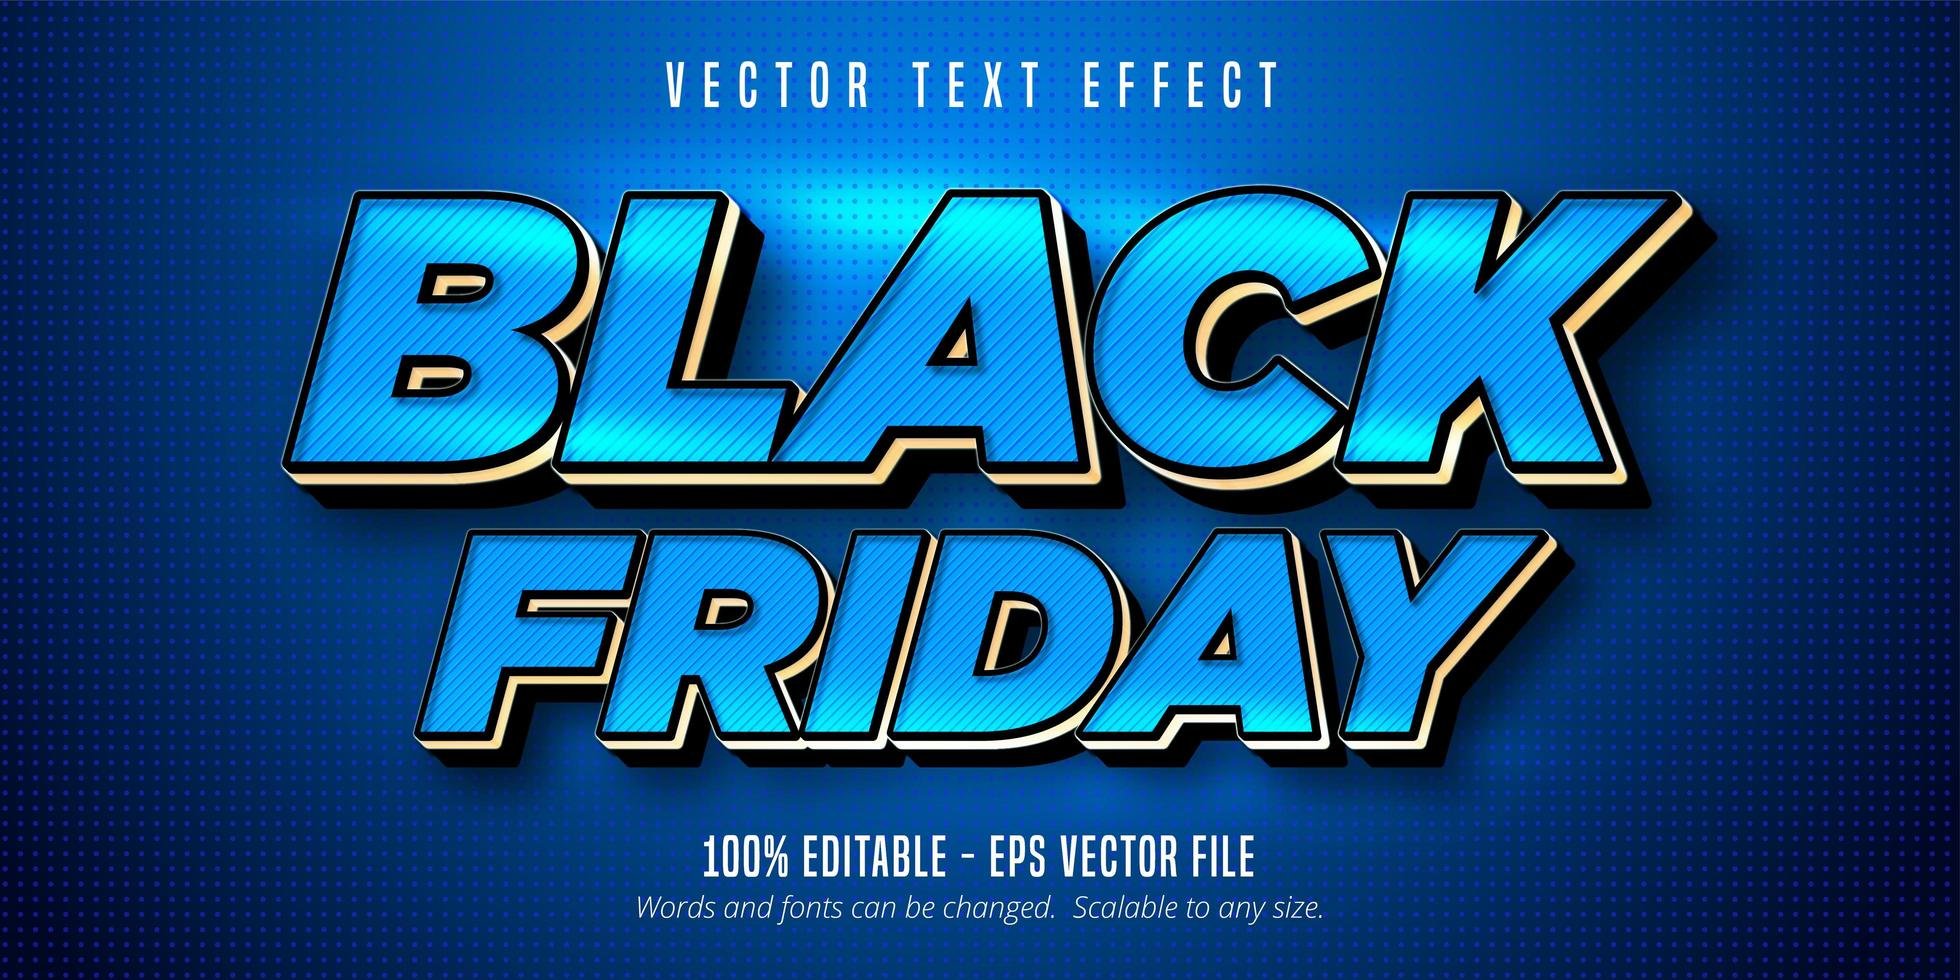 Striped Blue Black Friday editable text effect vector